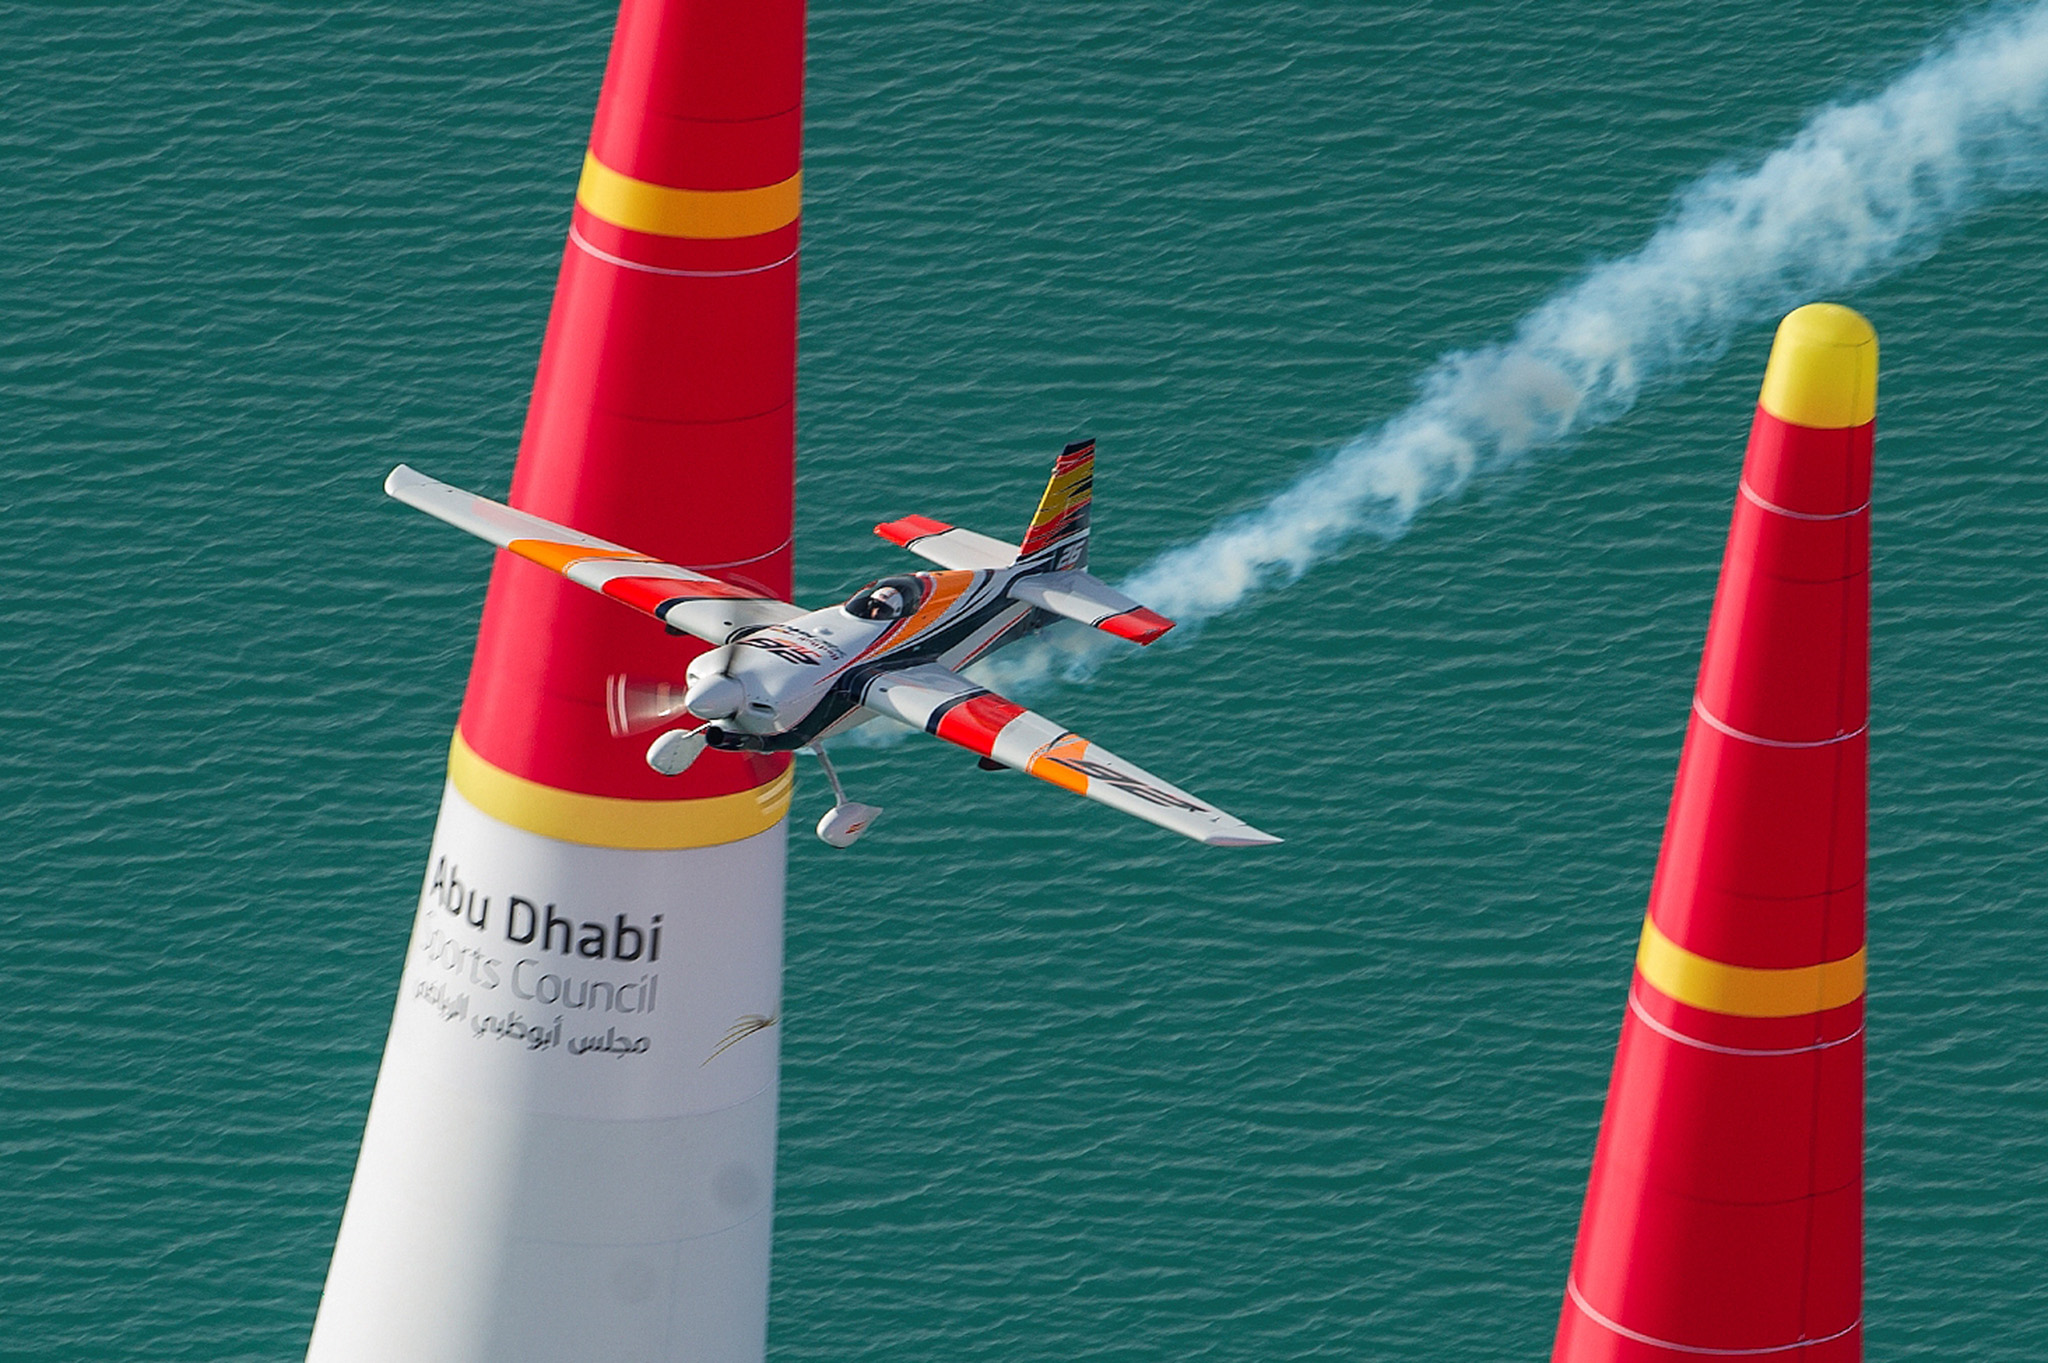 Juan Velarde en Red Bull Air race